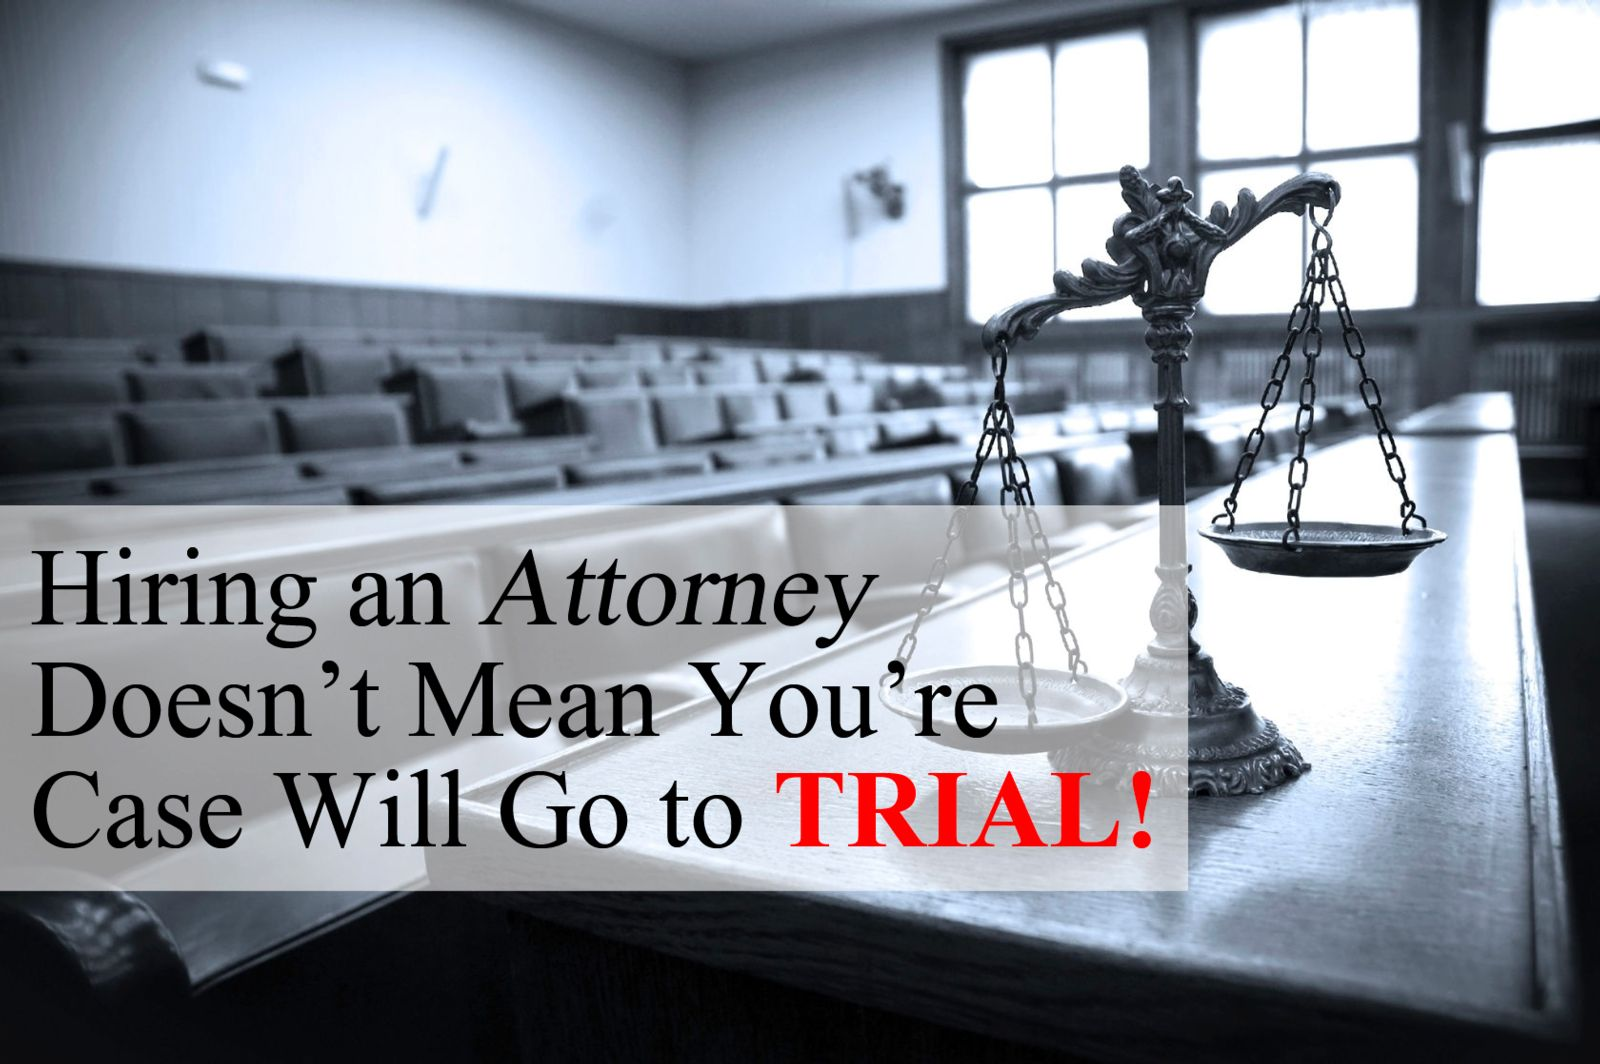 hiring attorney does not equal going to trial